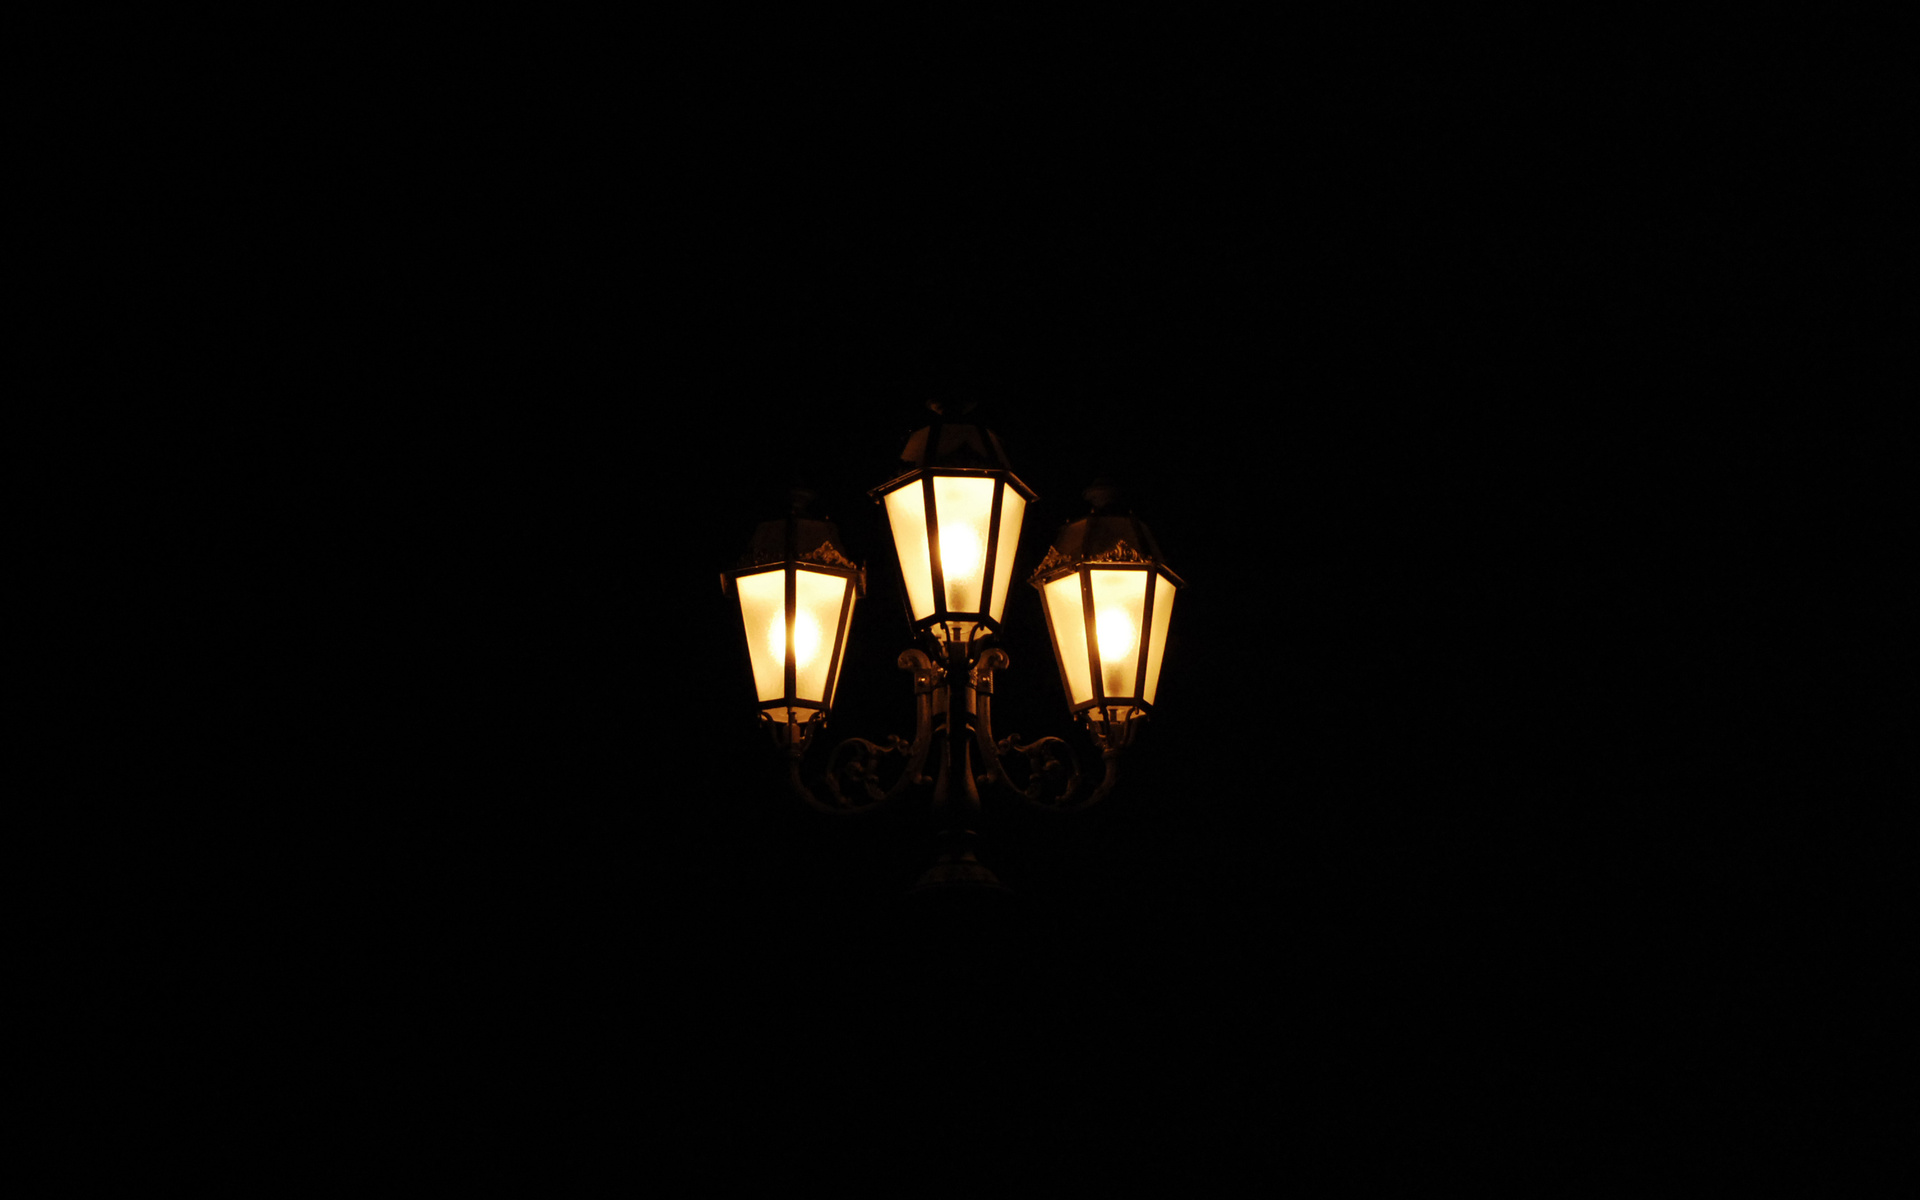 Dark lamp wallpaper 53976